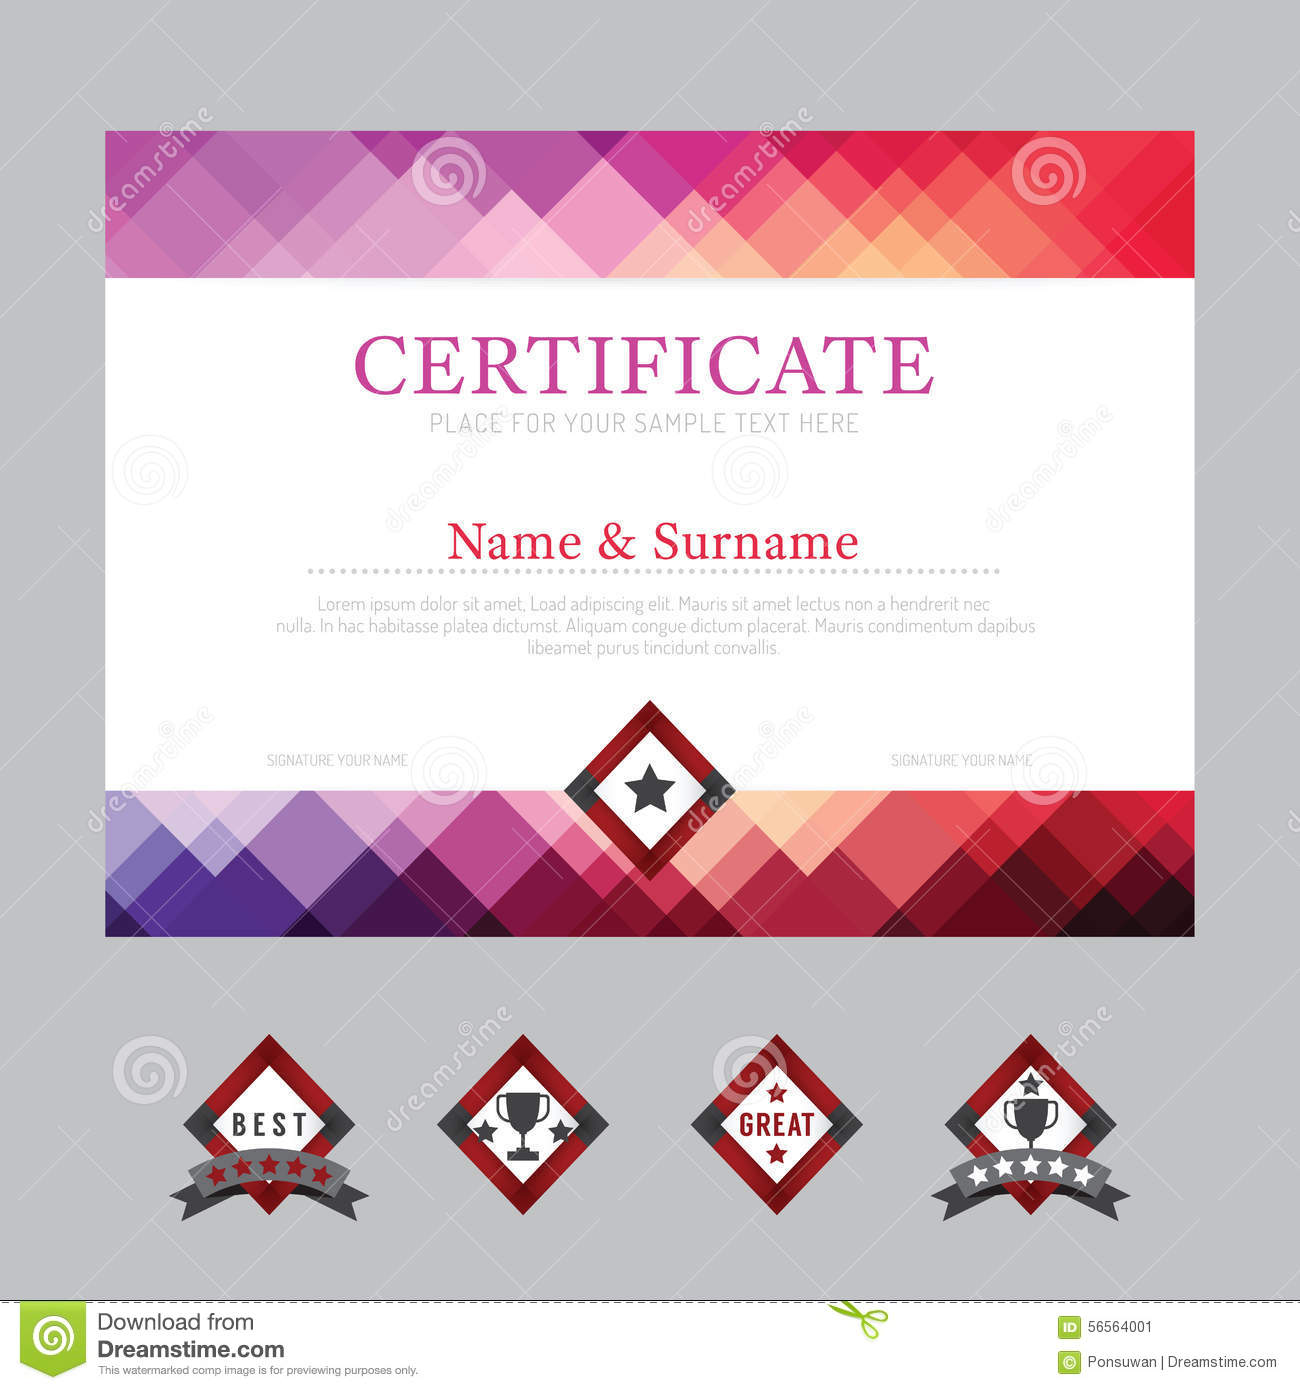 Certificate sample design fieldstation certificate template layout background frame design vector mode yadclub Choice Image